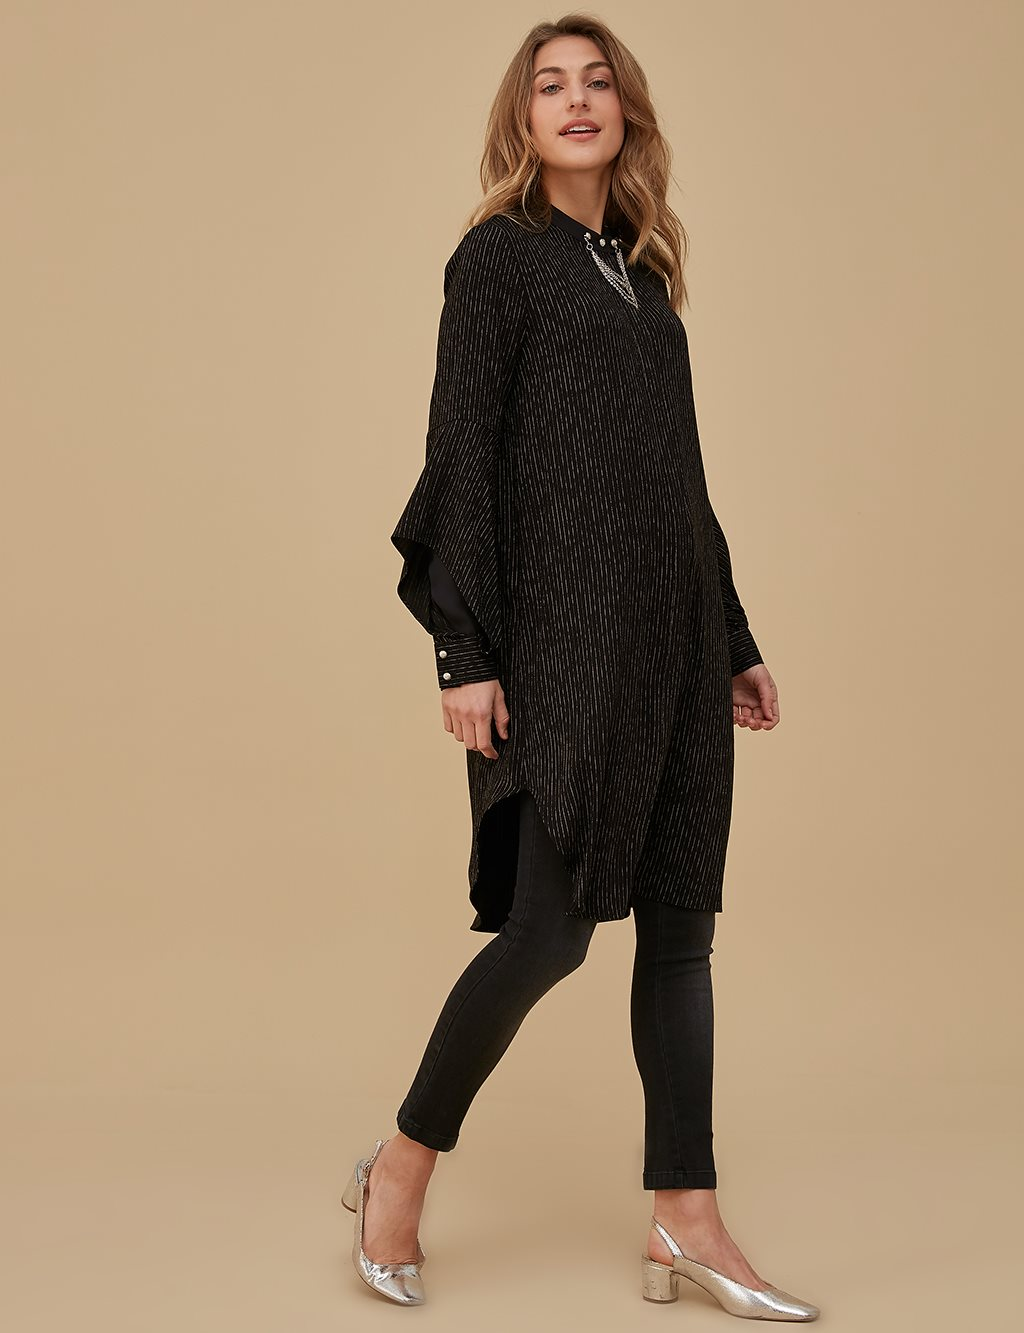 Striped Balloon Sleeve Tunic A9 21291 Black